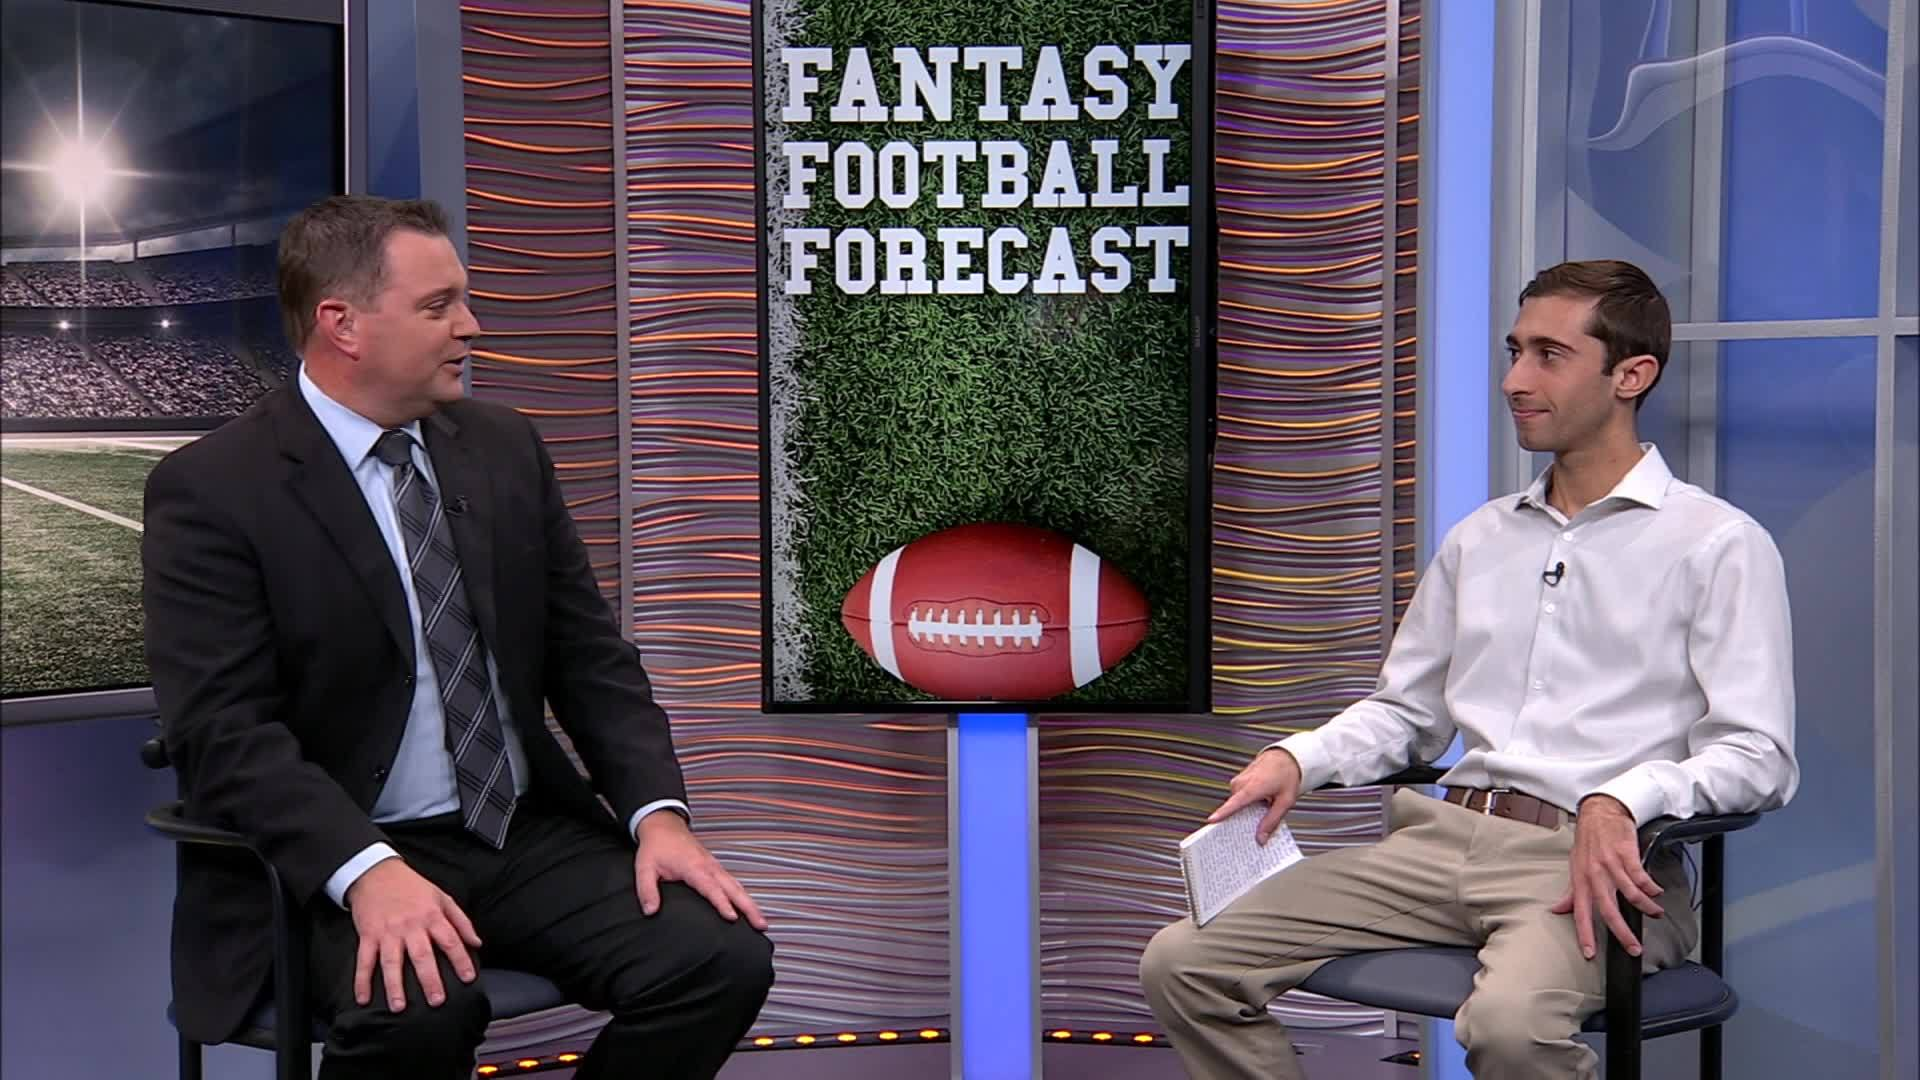 It is playoff time on the Fantasy Football Forecast